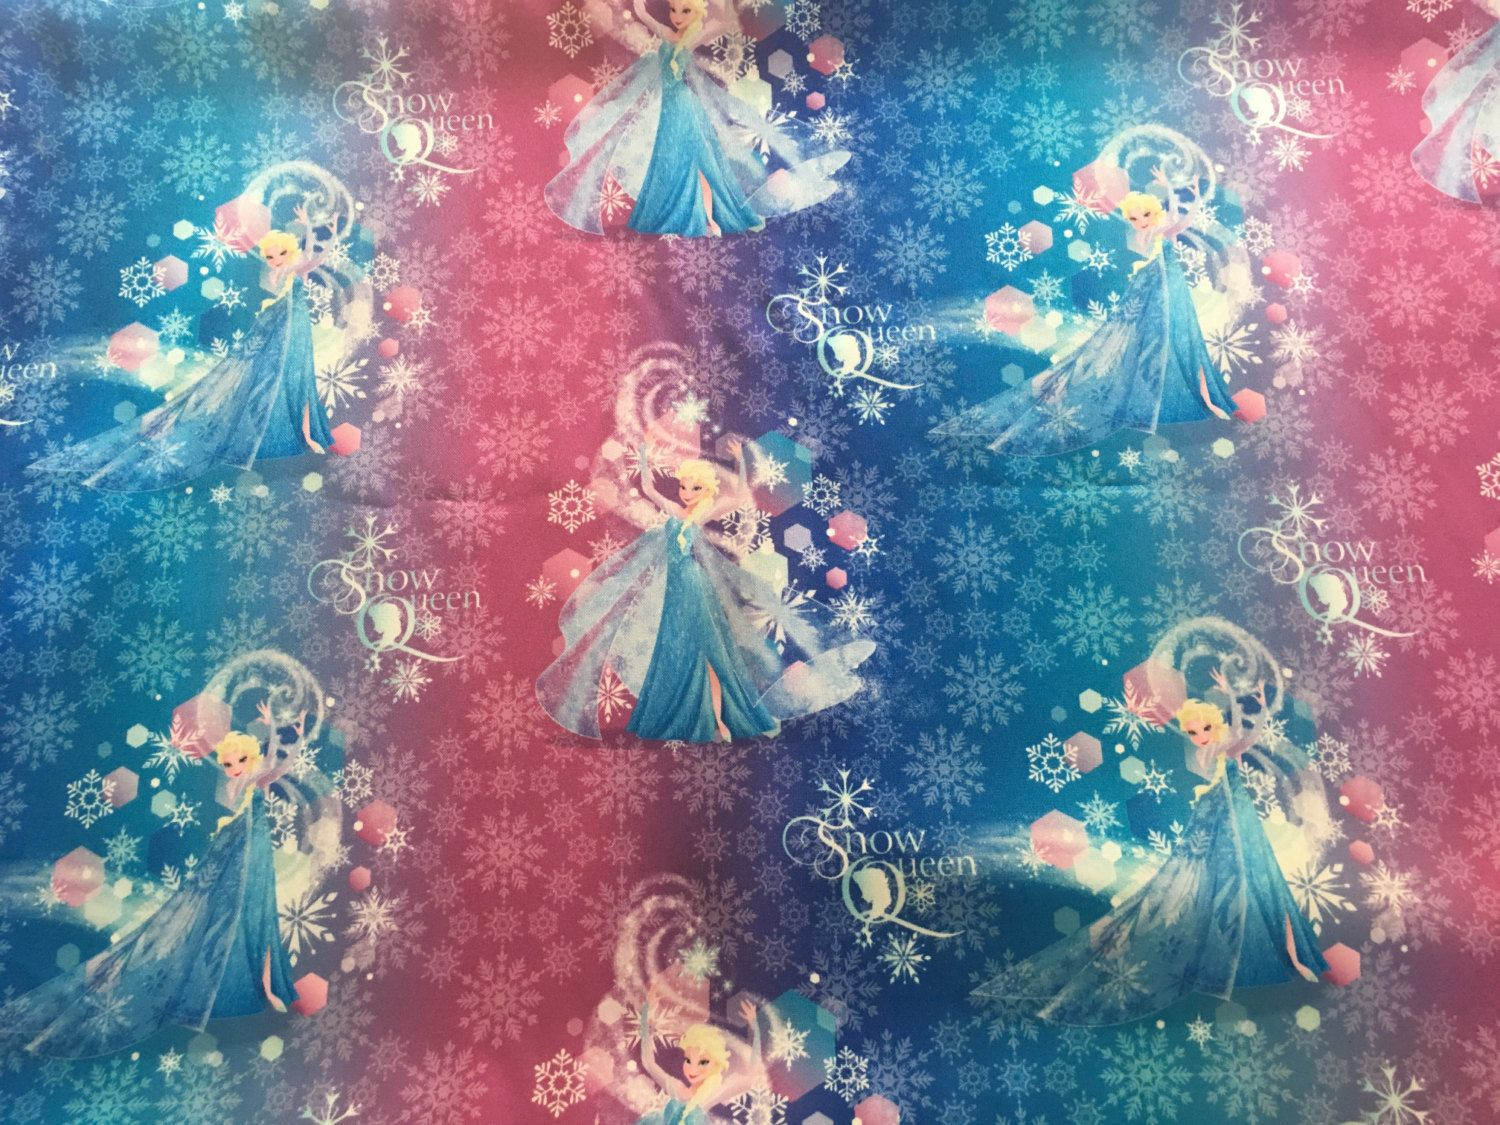 Frozen Elsa Snow Queen Ombre Brushed Back Satin Fabric By Springs Creative For Disney 58 Onlinebargainsgalore On Etsy